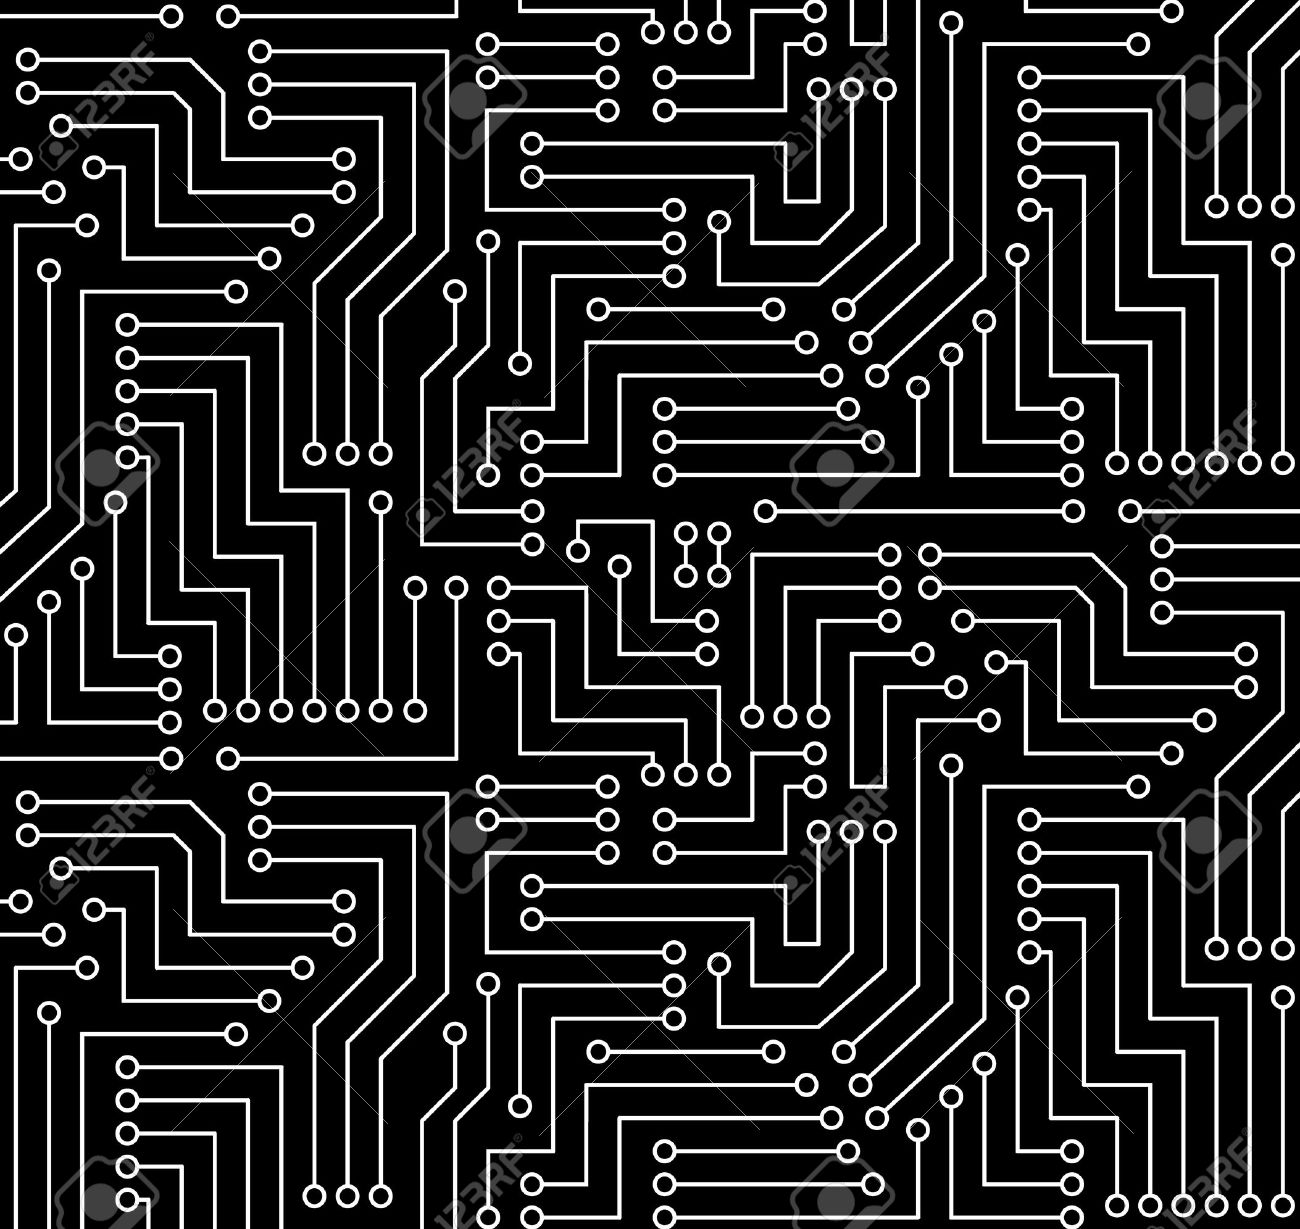 Circuit Board Images Free Wiring Diagrams Background Royalty Stock Image 24974606 Black And White Printed Seamless With Pattern In Rh 123rf Com Blue